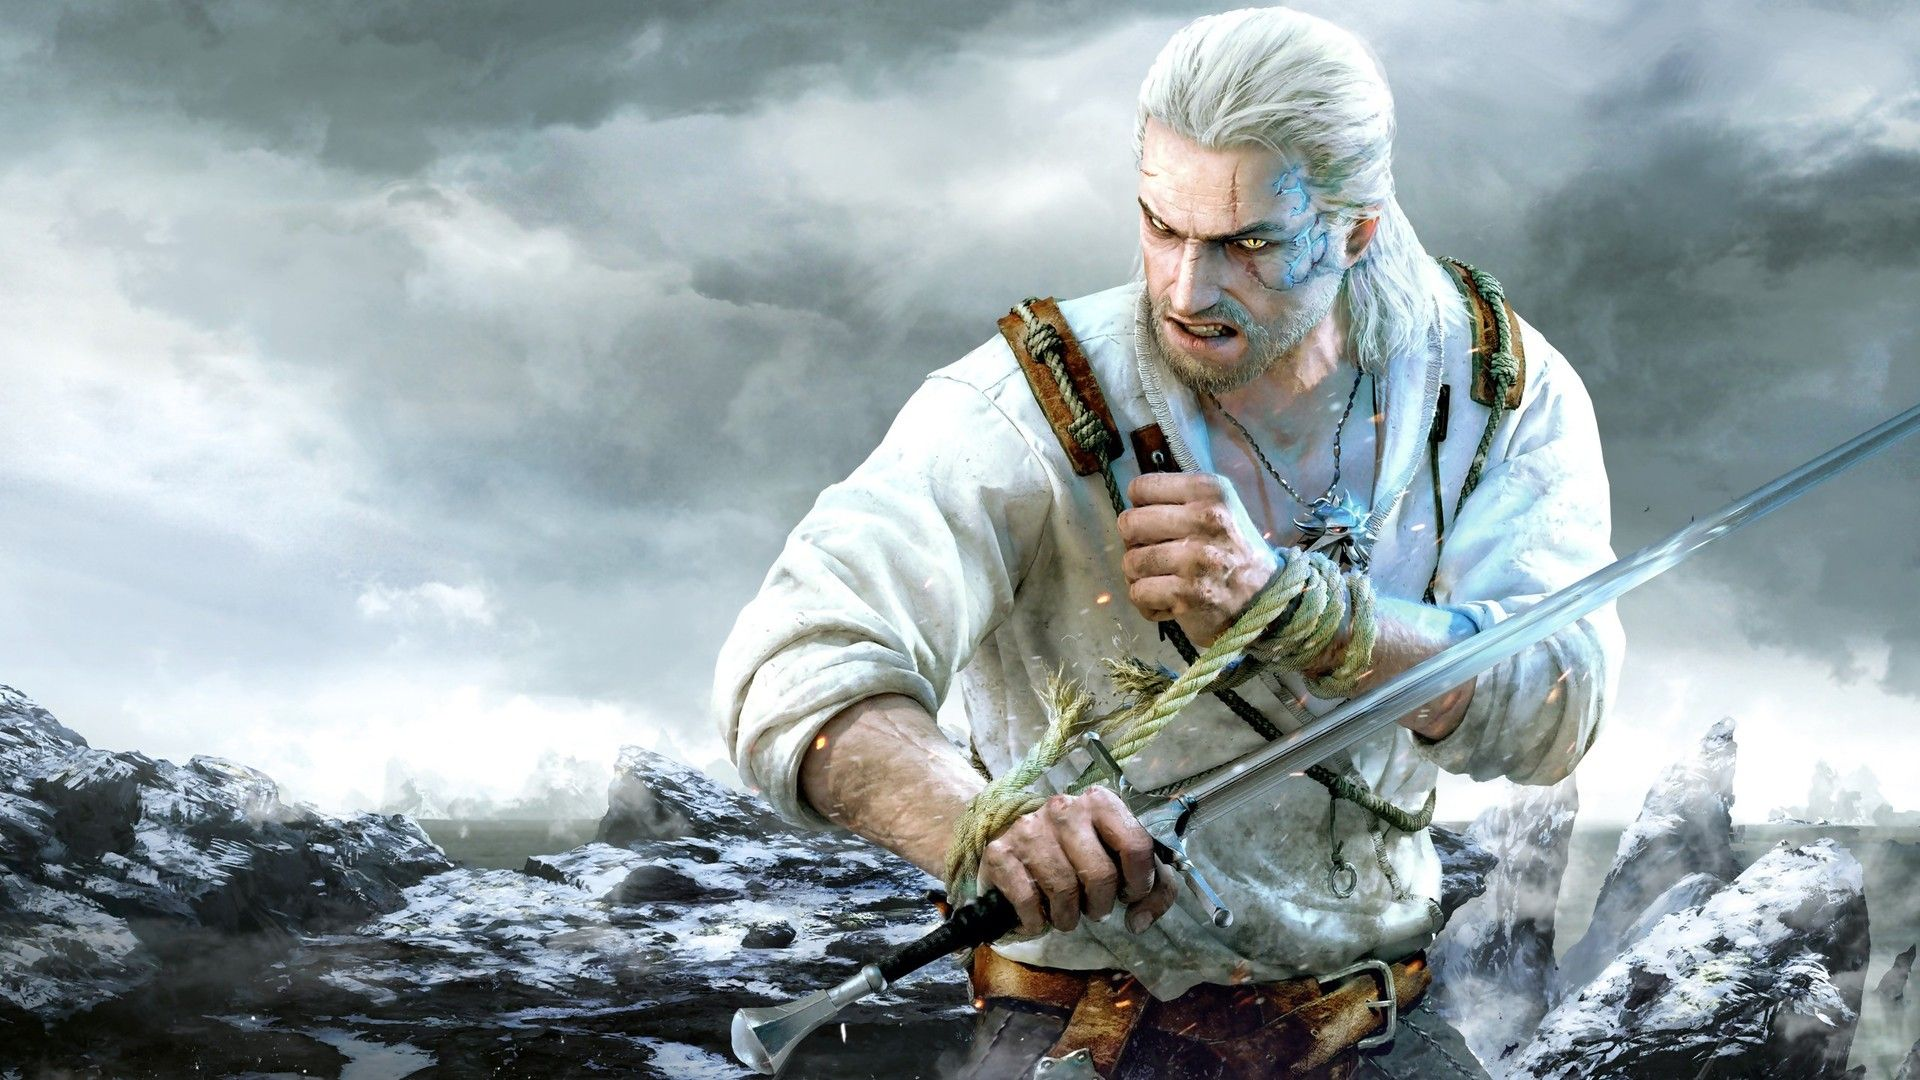 General 1920x1080 Geralt Of Rivia The Witcher 3 Wild Hunt The Witcher Wild Hunt The Witcher The Witcher 3